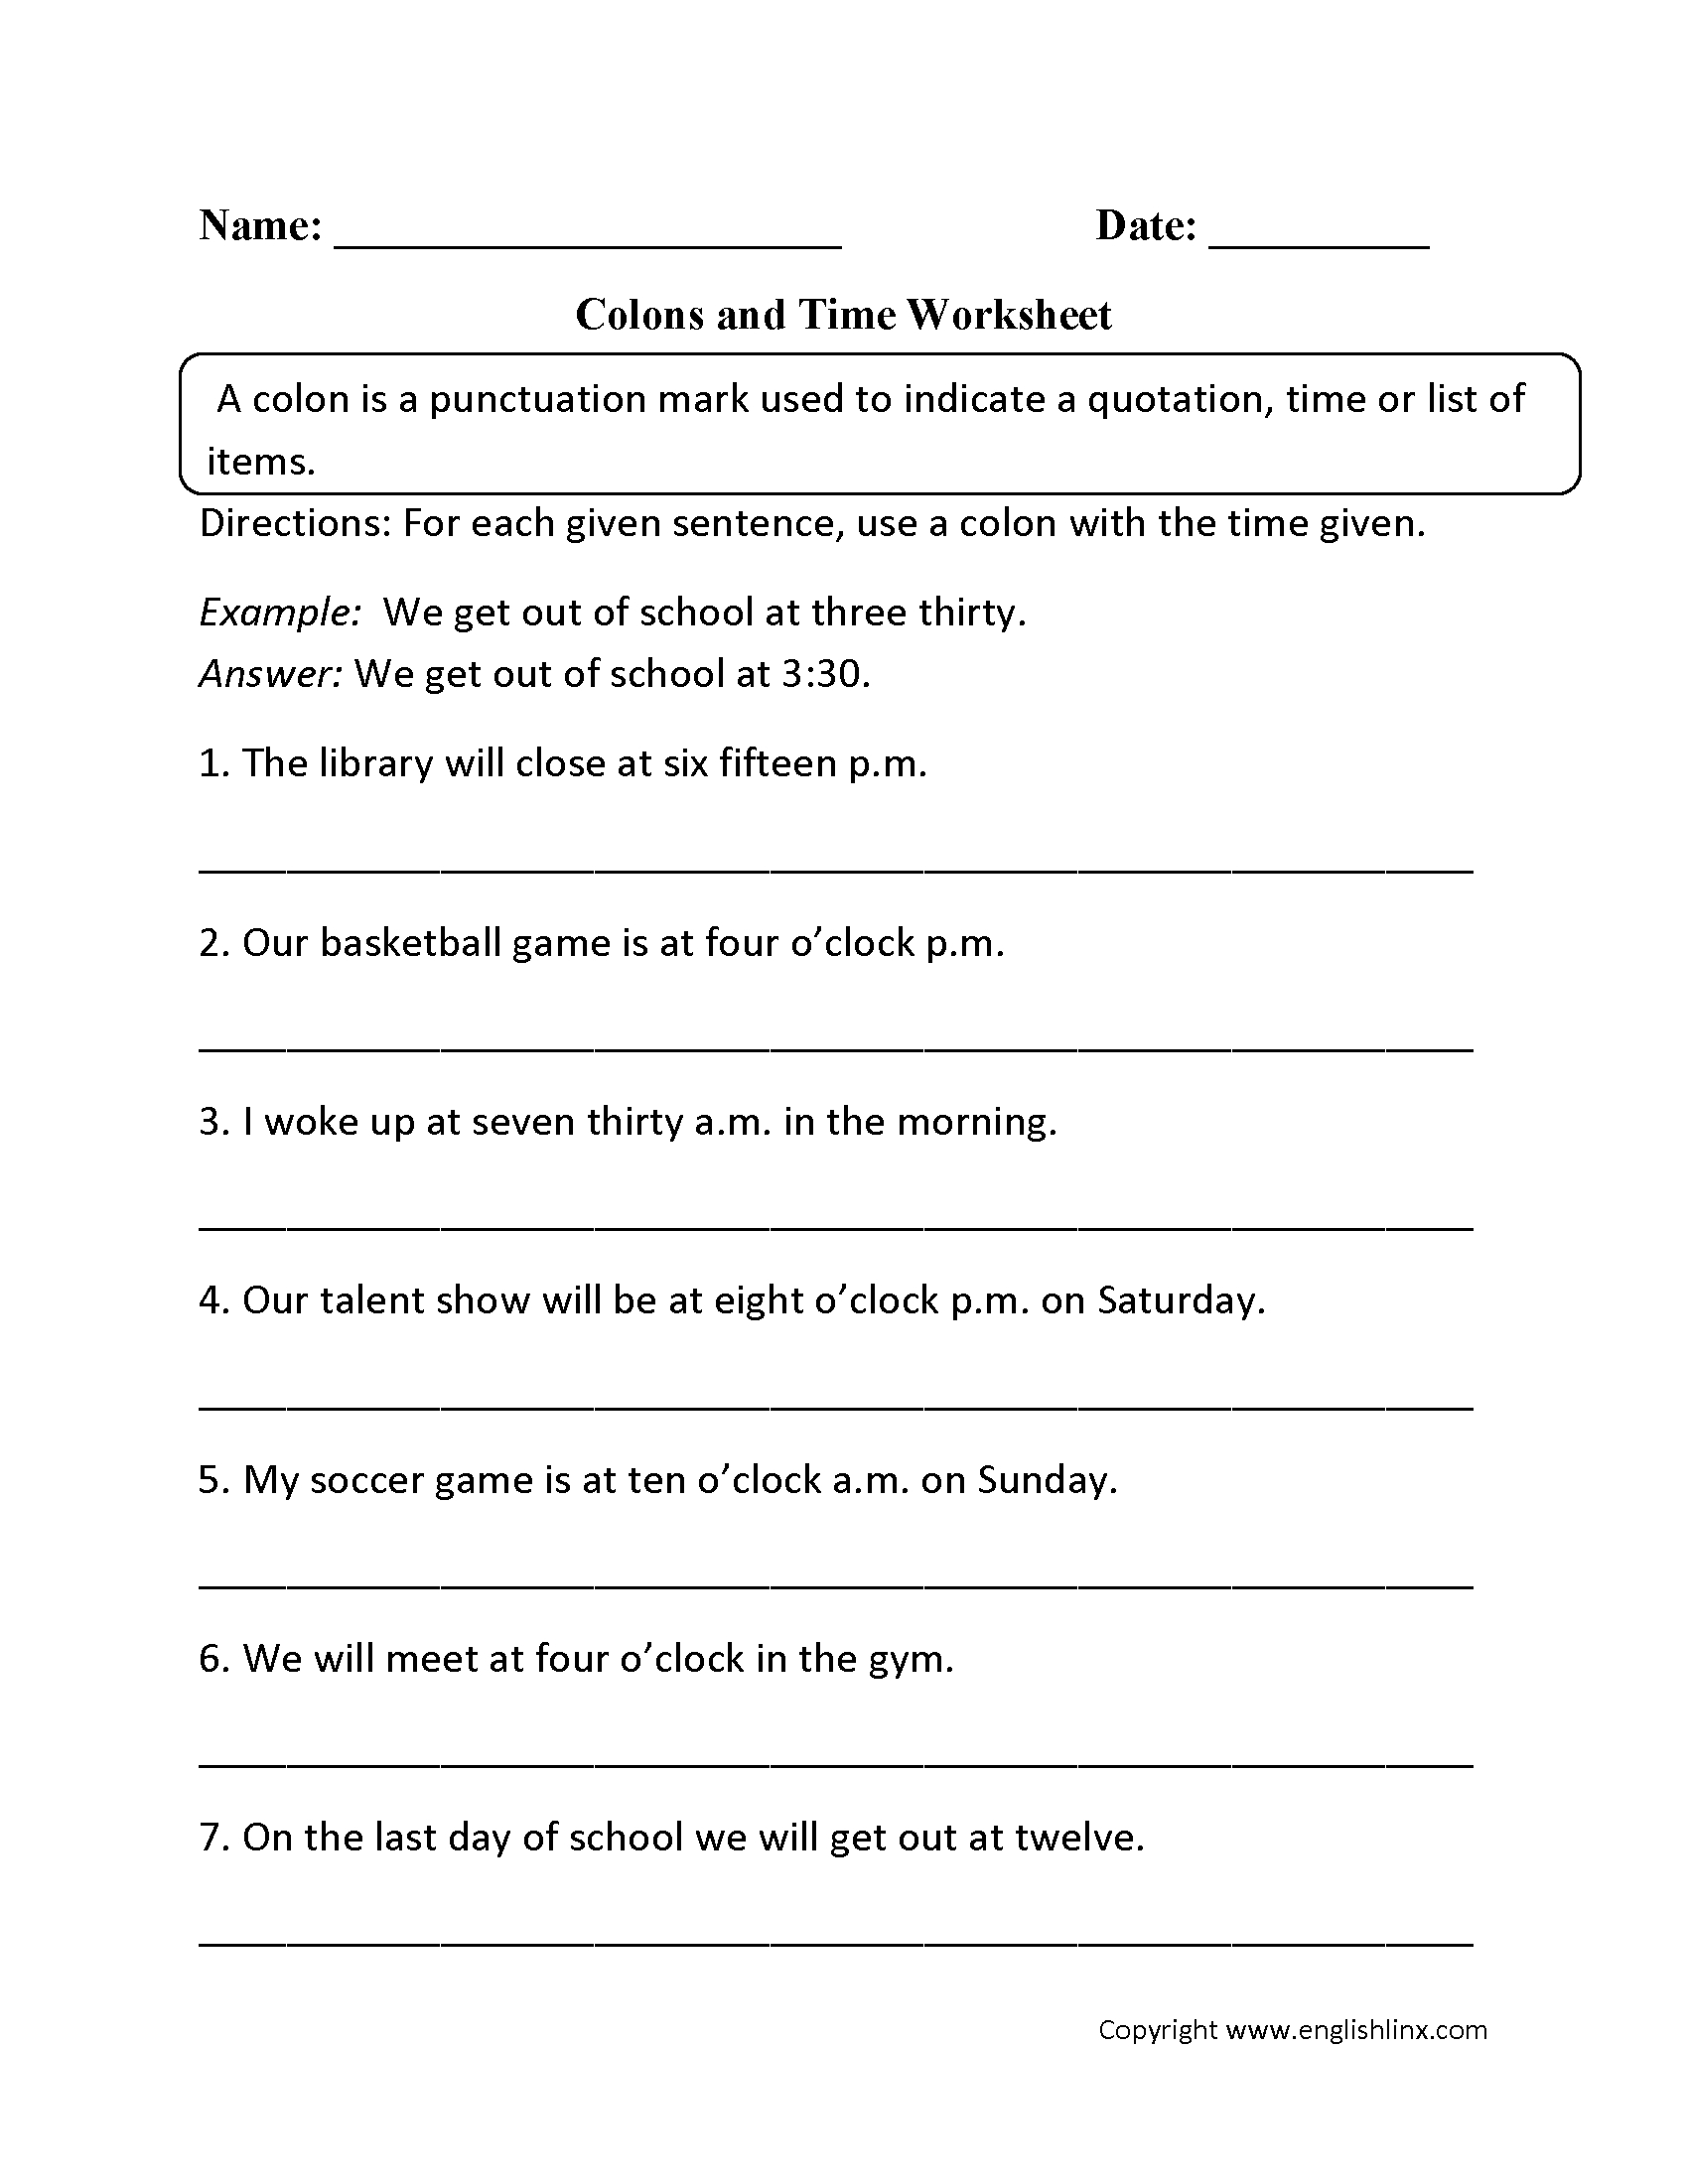 Punctuation Worksheets | Colon Worksheets | Free Printable Punctuation Worksheets For Middle School